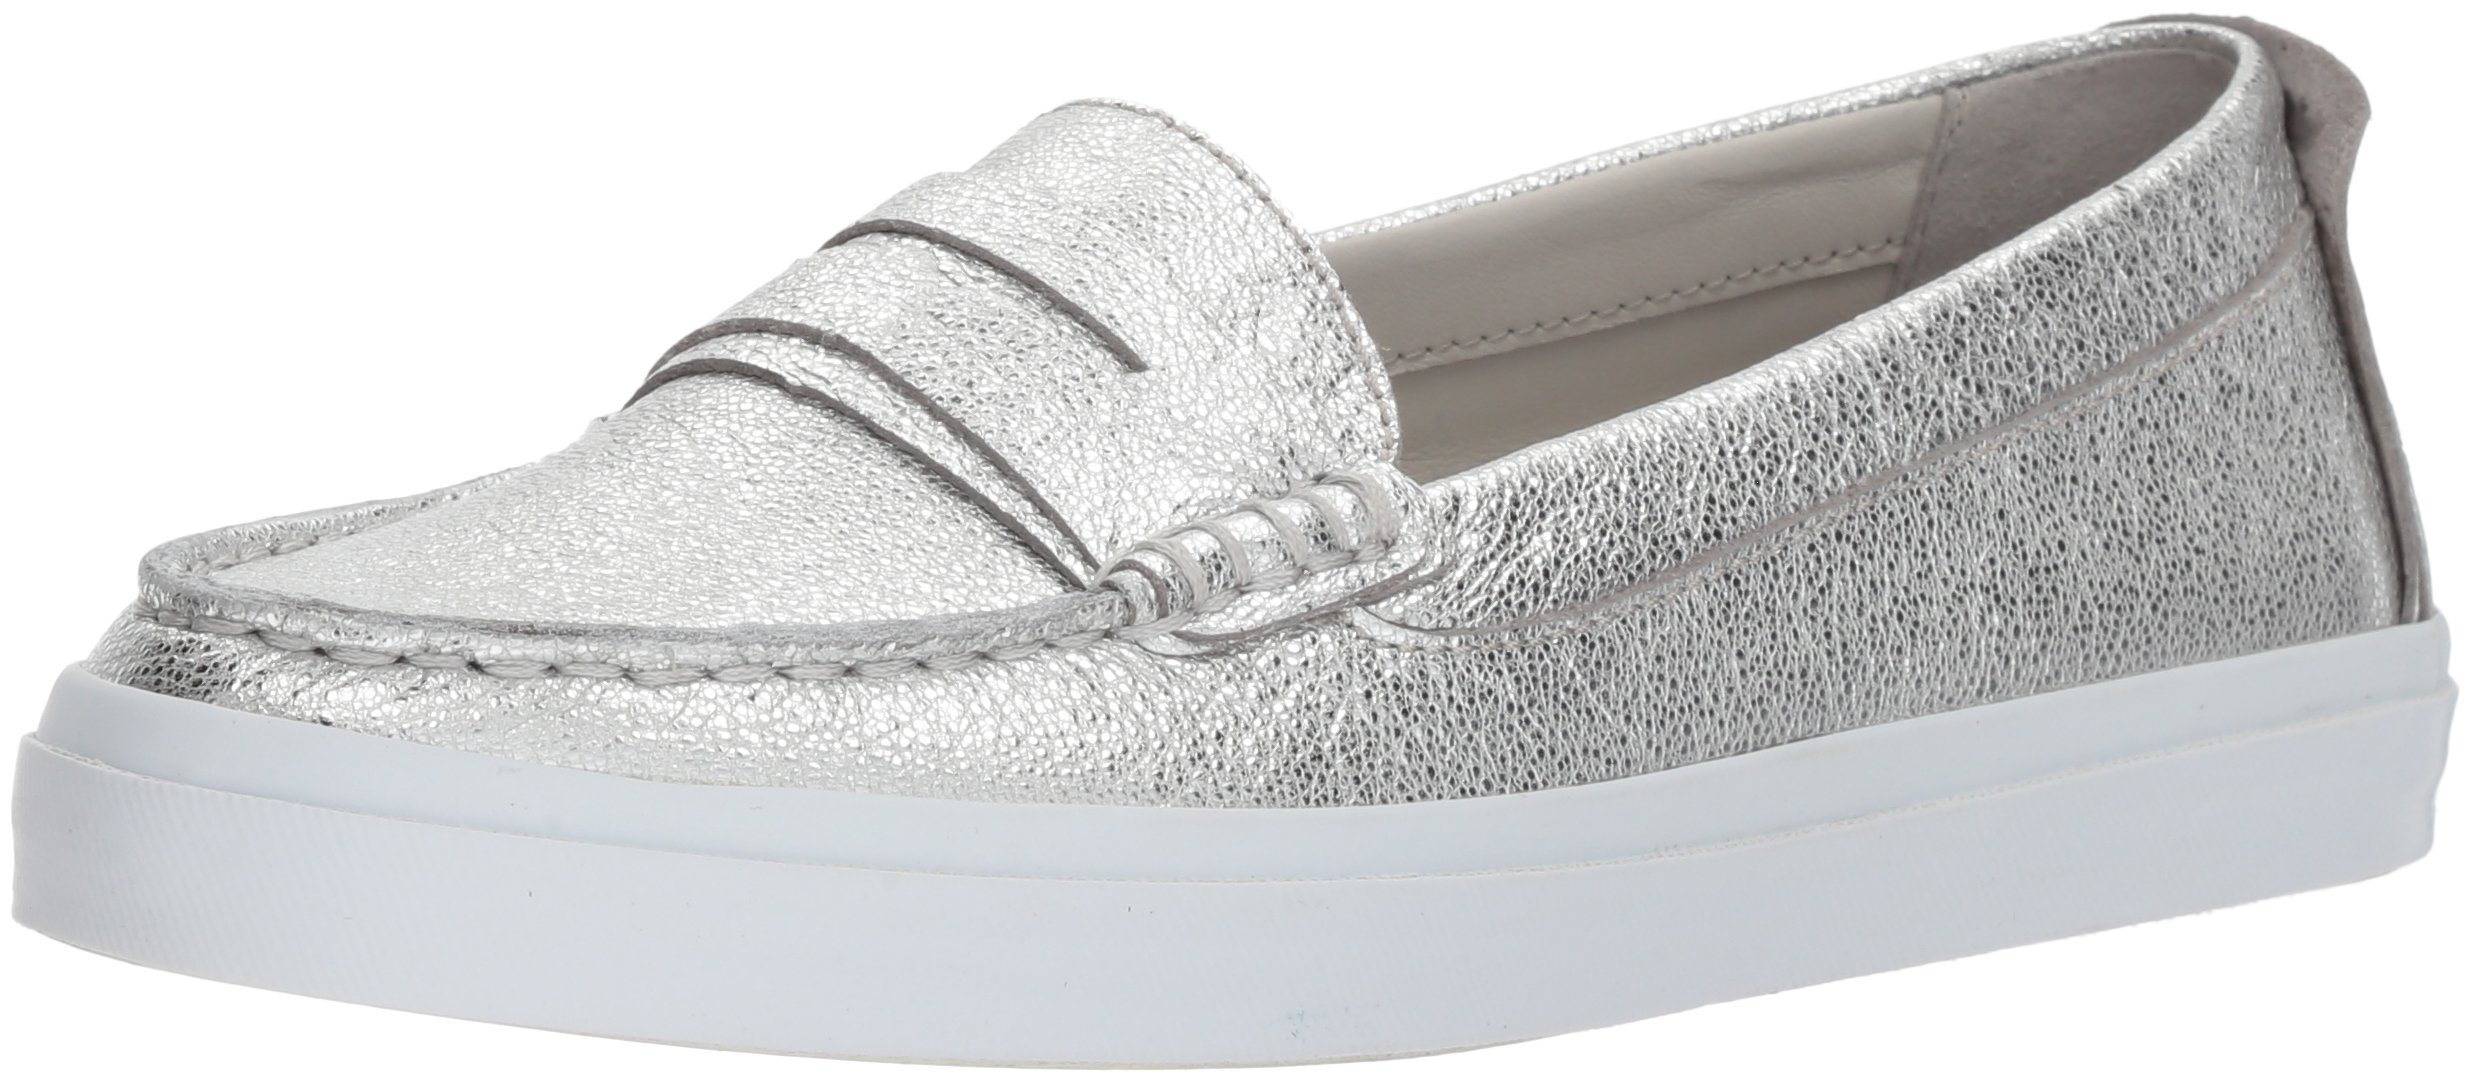 Cole Haan Women's Pinch Weekender LX Penny Loafer, Silver Wash Leather, 6.5 B US